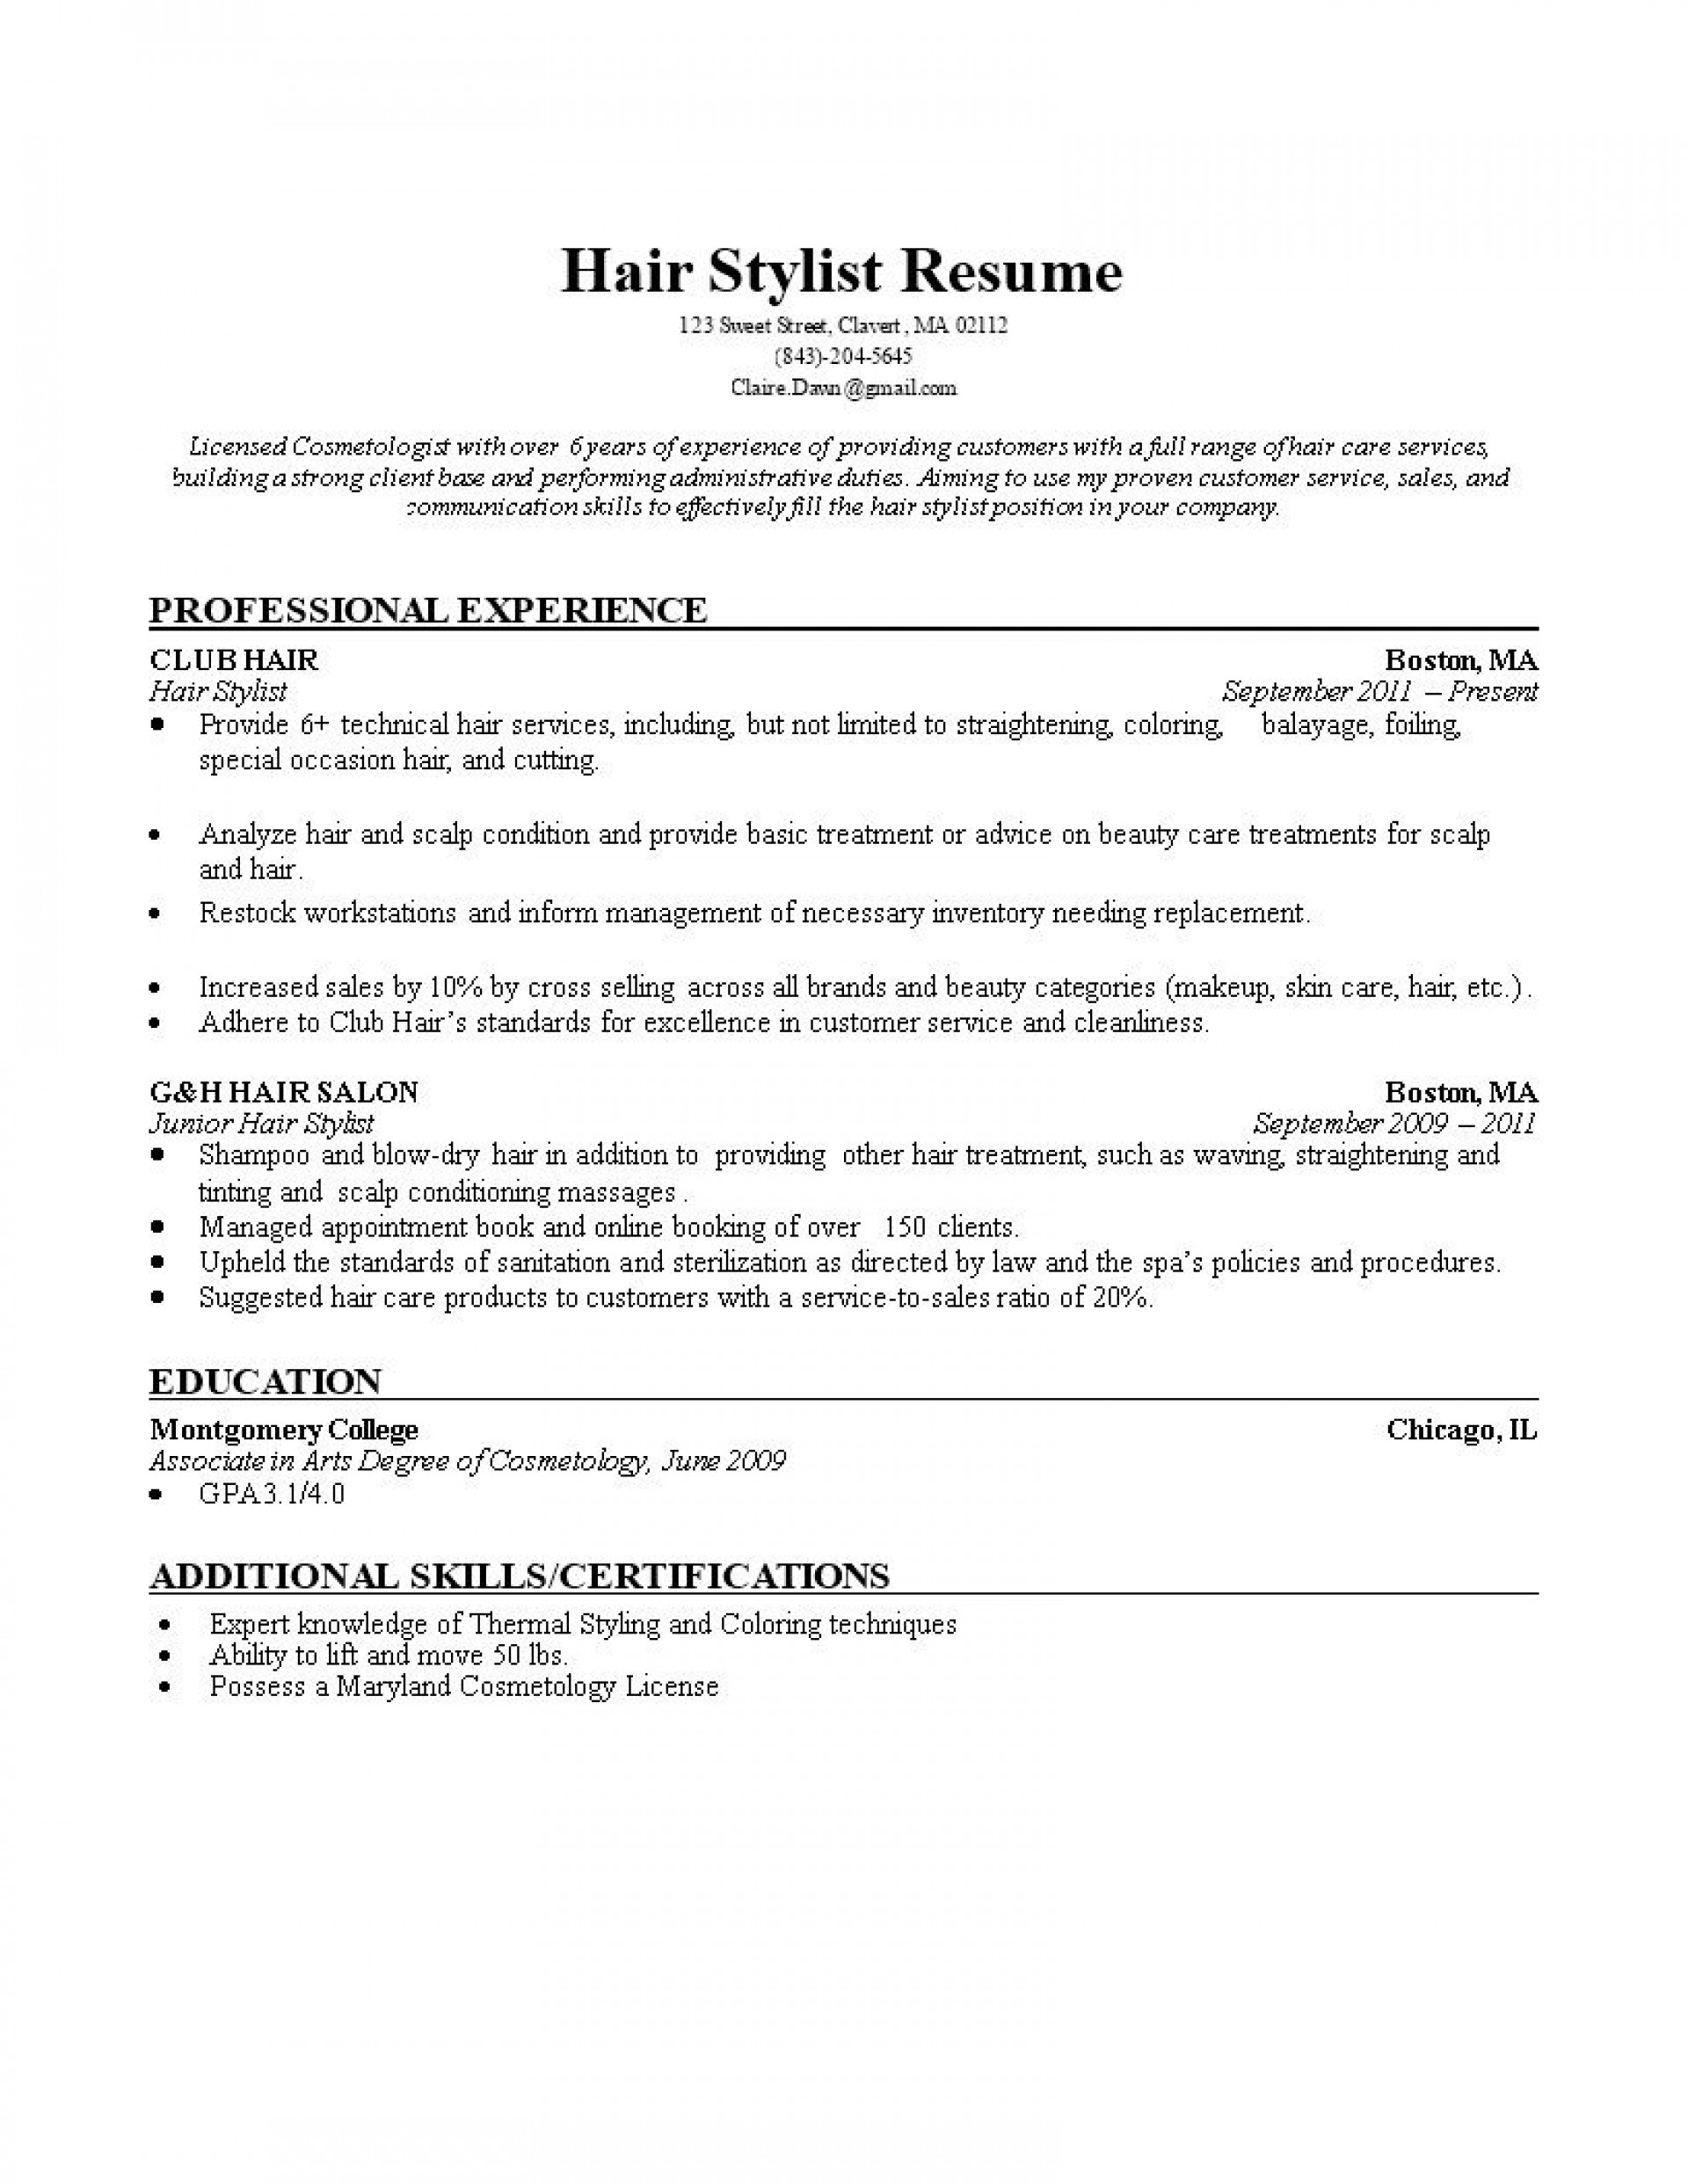 002 Impressive Hair Stylist Resume Template Picture  Word Free Download1920